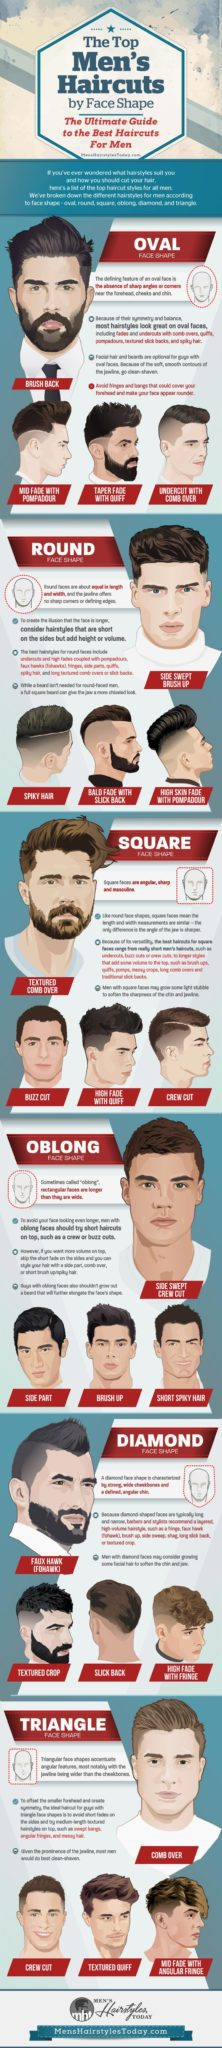 haircuts for men and boys